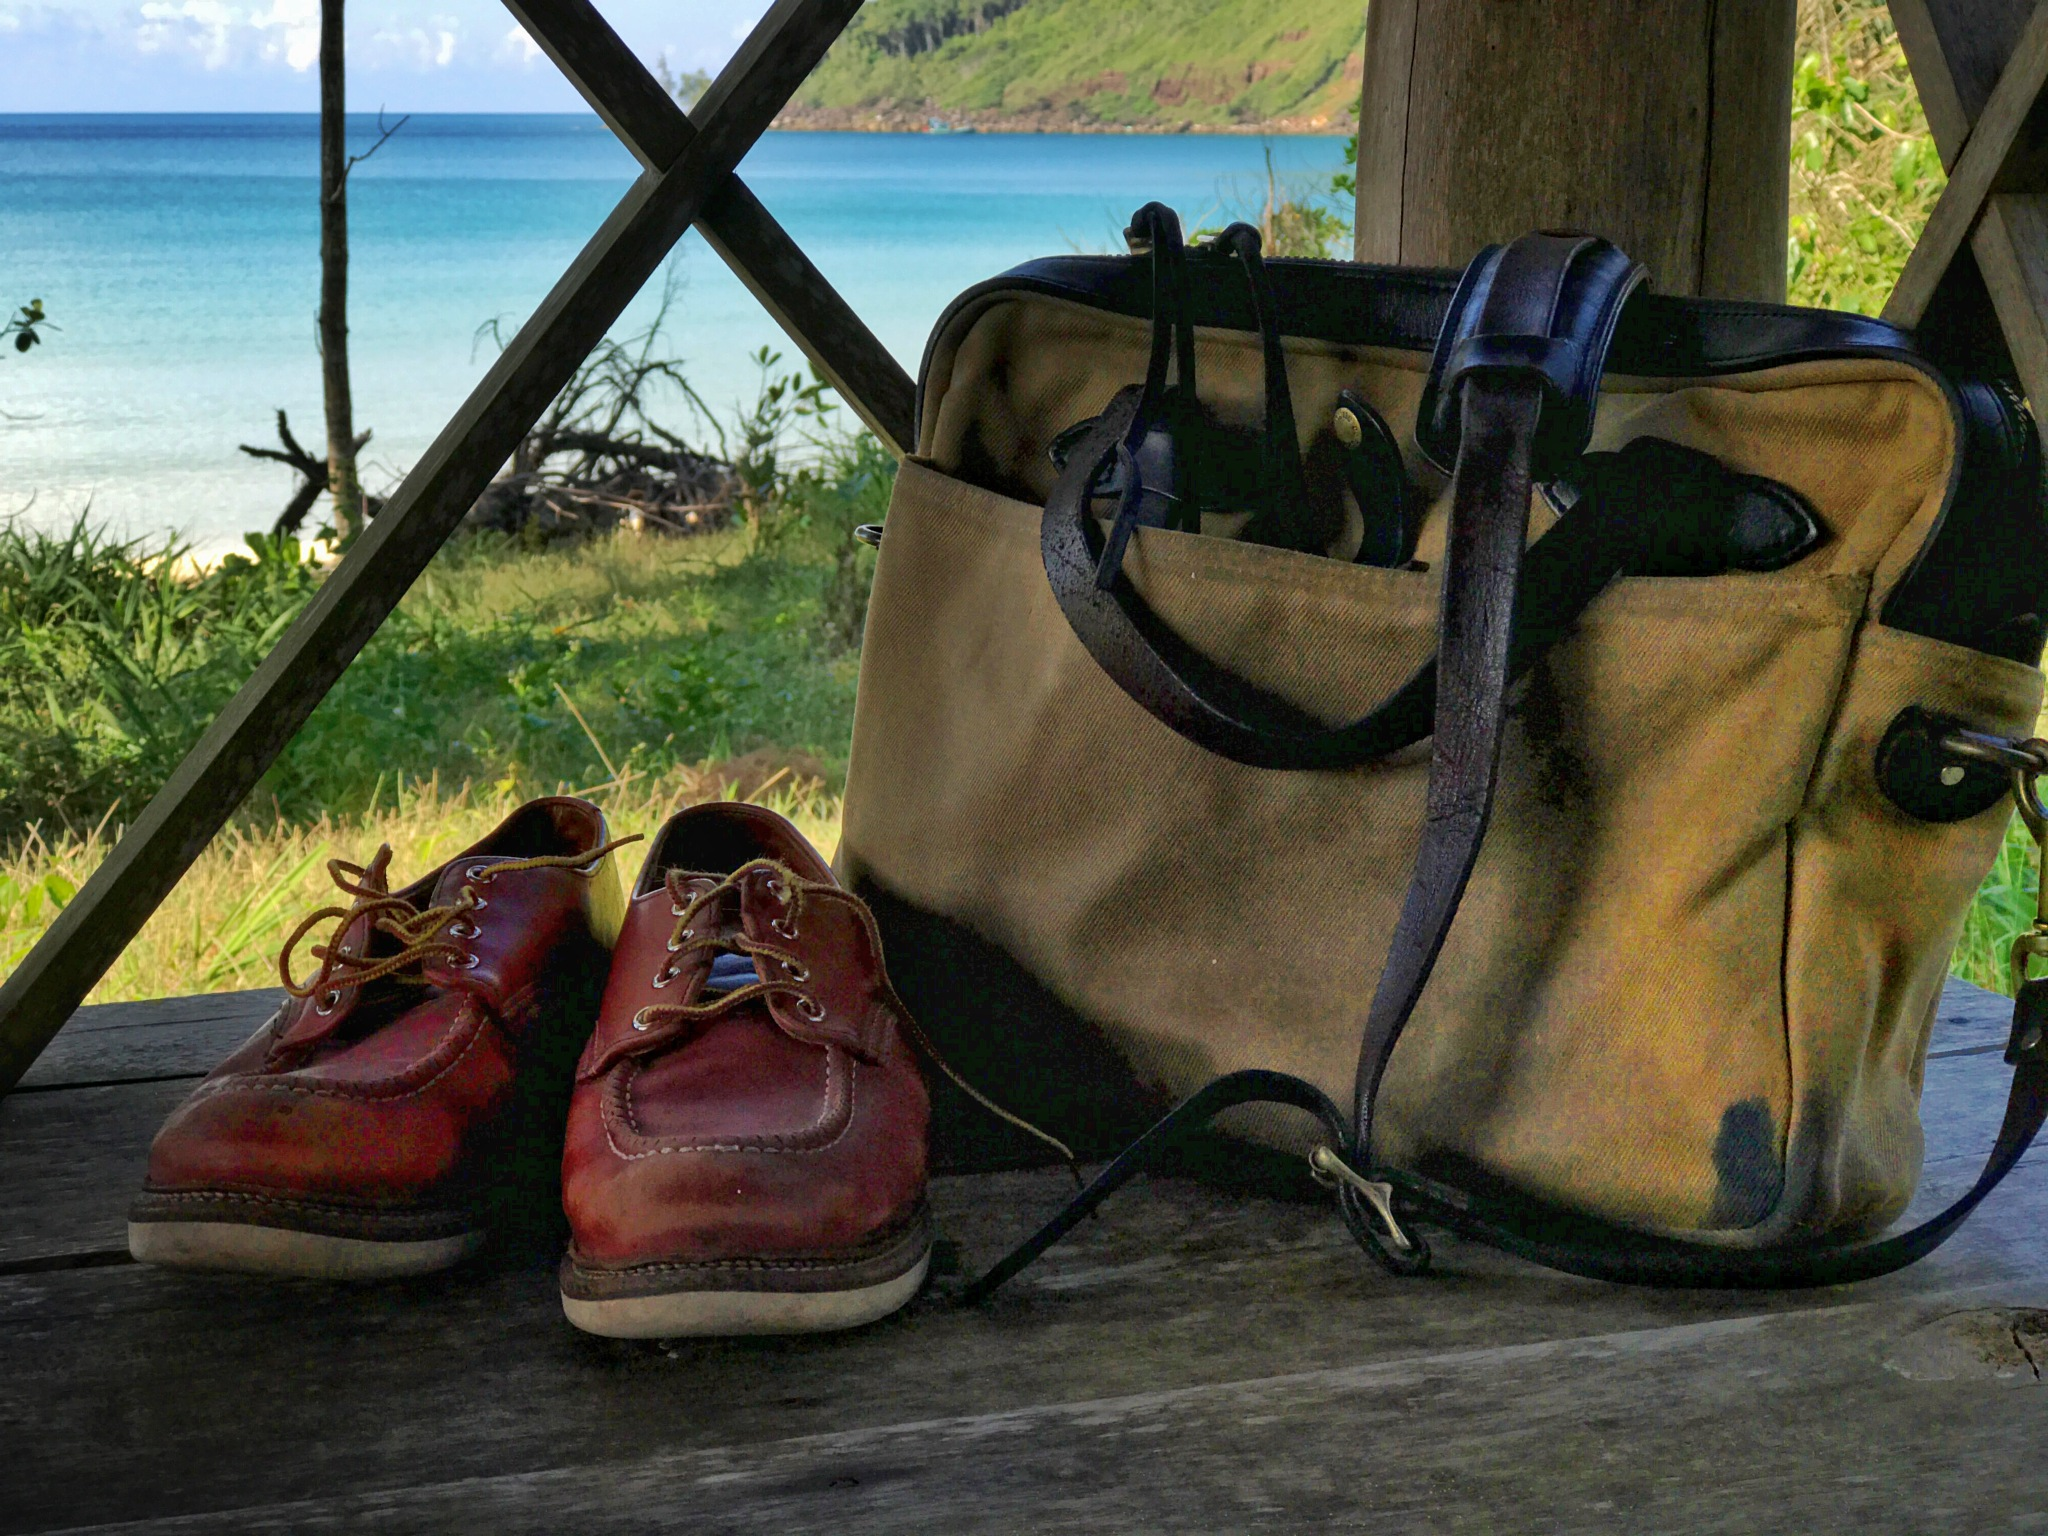 redwing & filson by jtexmusic